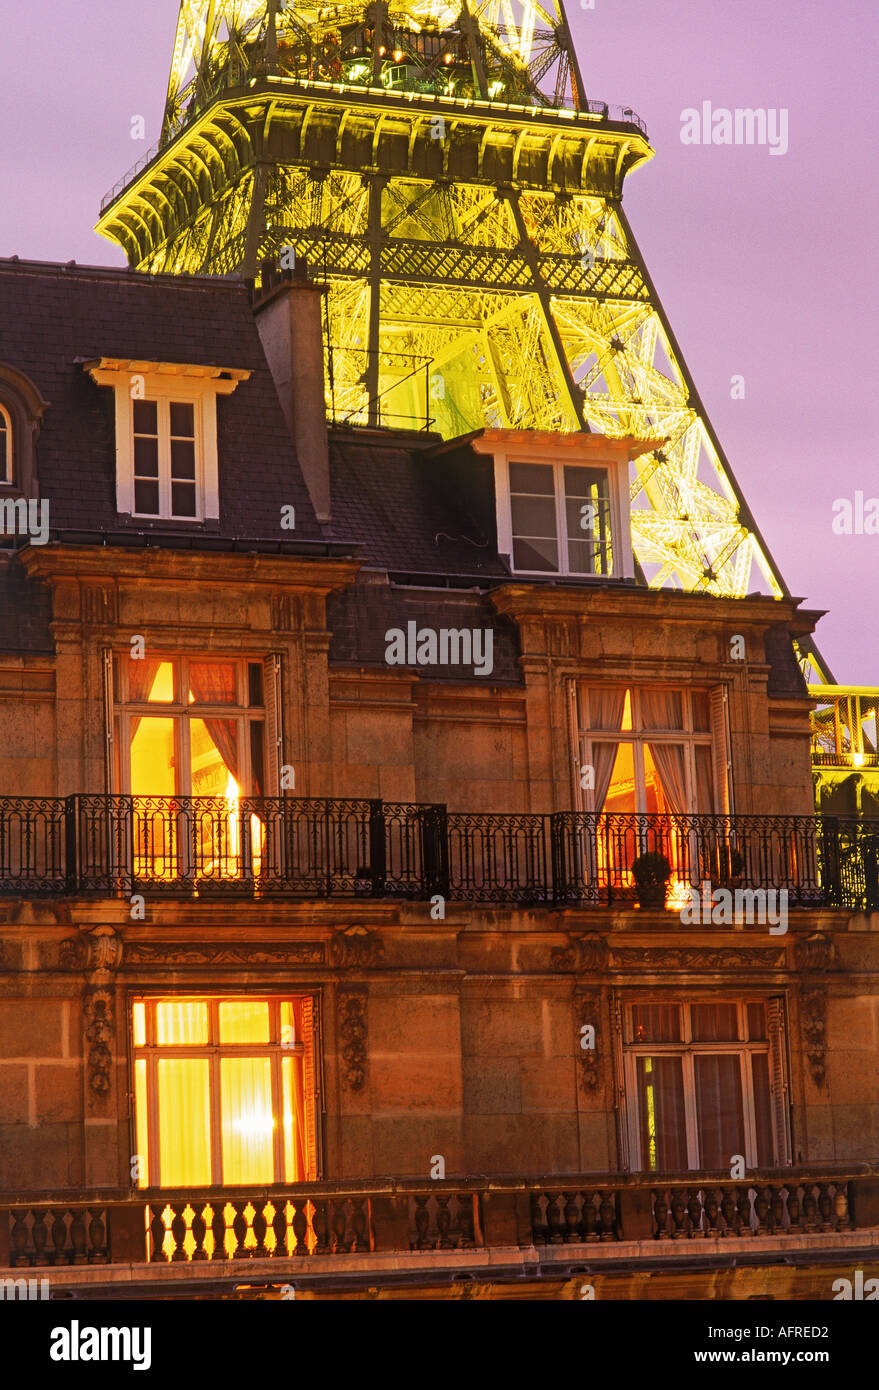 Top Floor Apartment With Eiffel Tower At Night   Stock Image